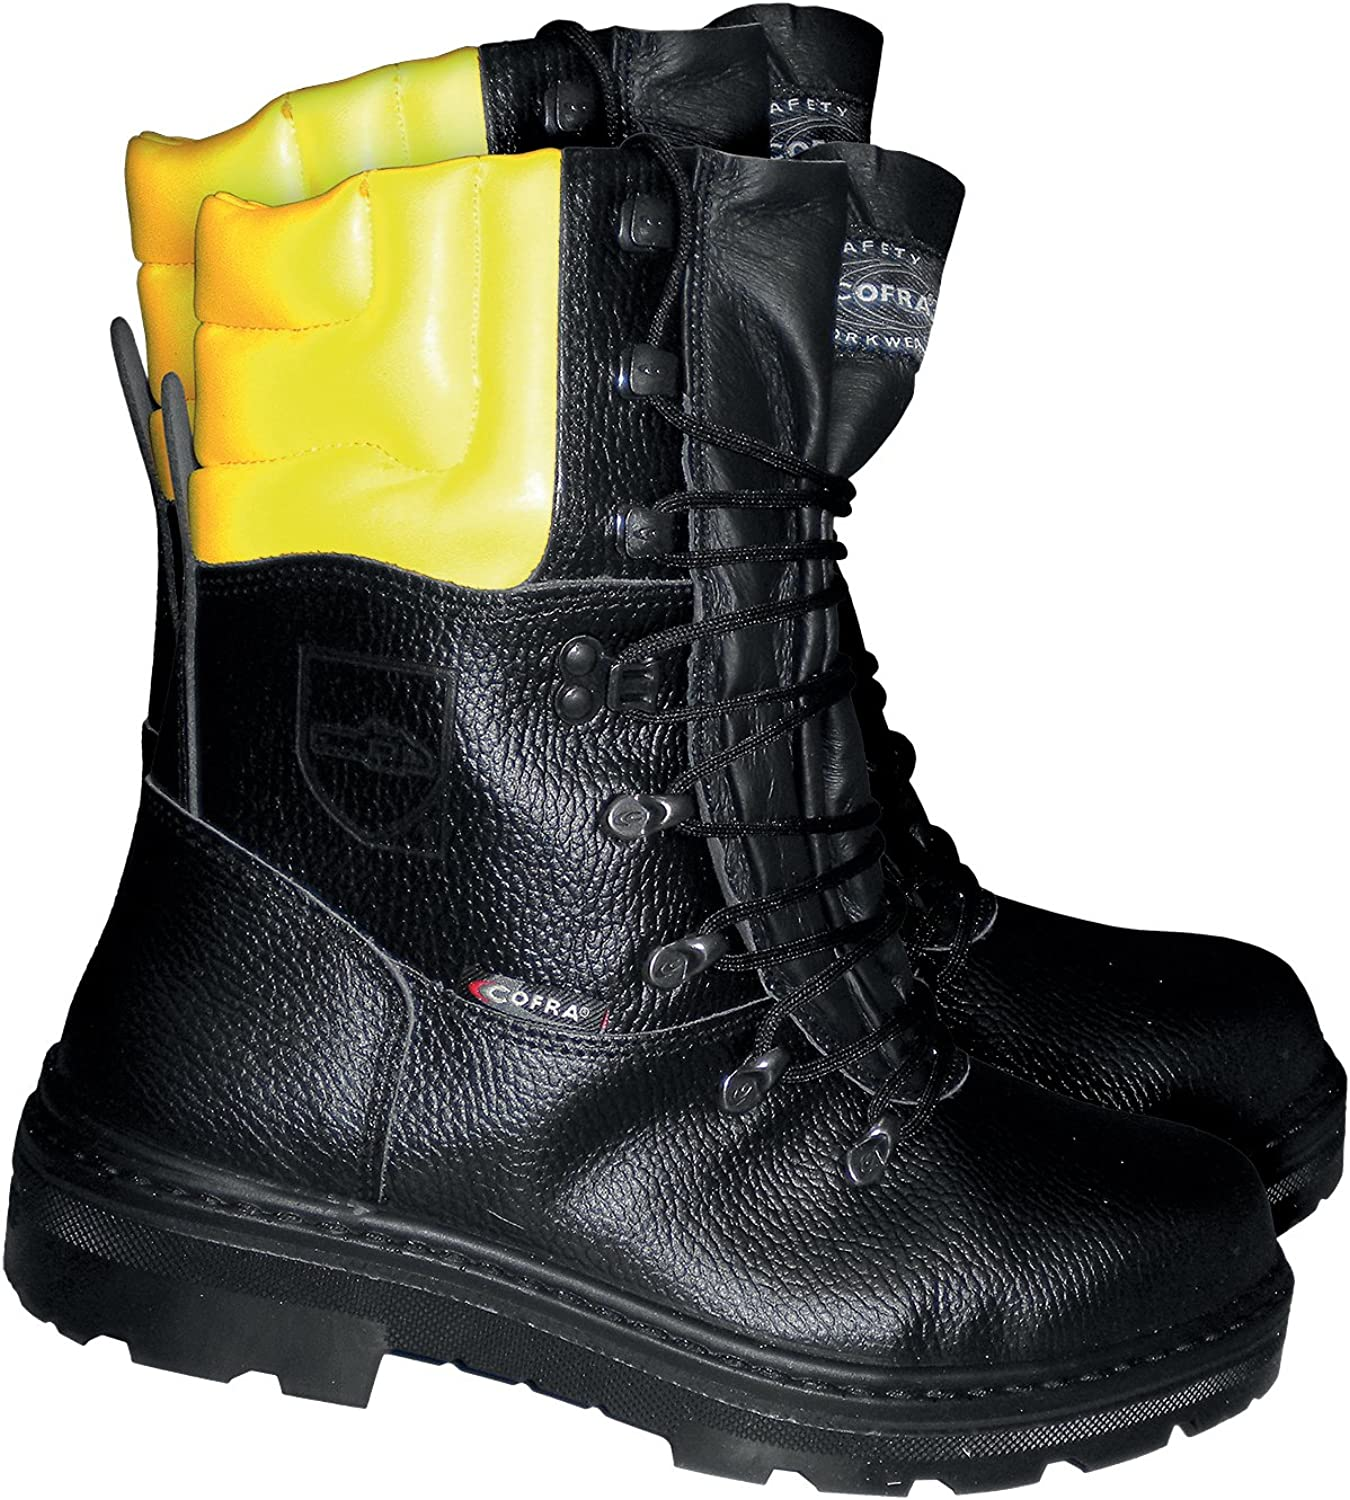 Cofra cut predection boot Woodsman BIS forestry boot with saw predection, black, 25580-000, 40, Black